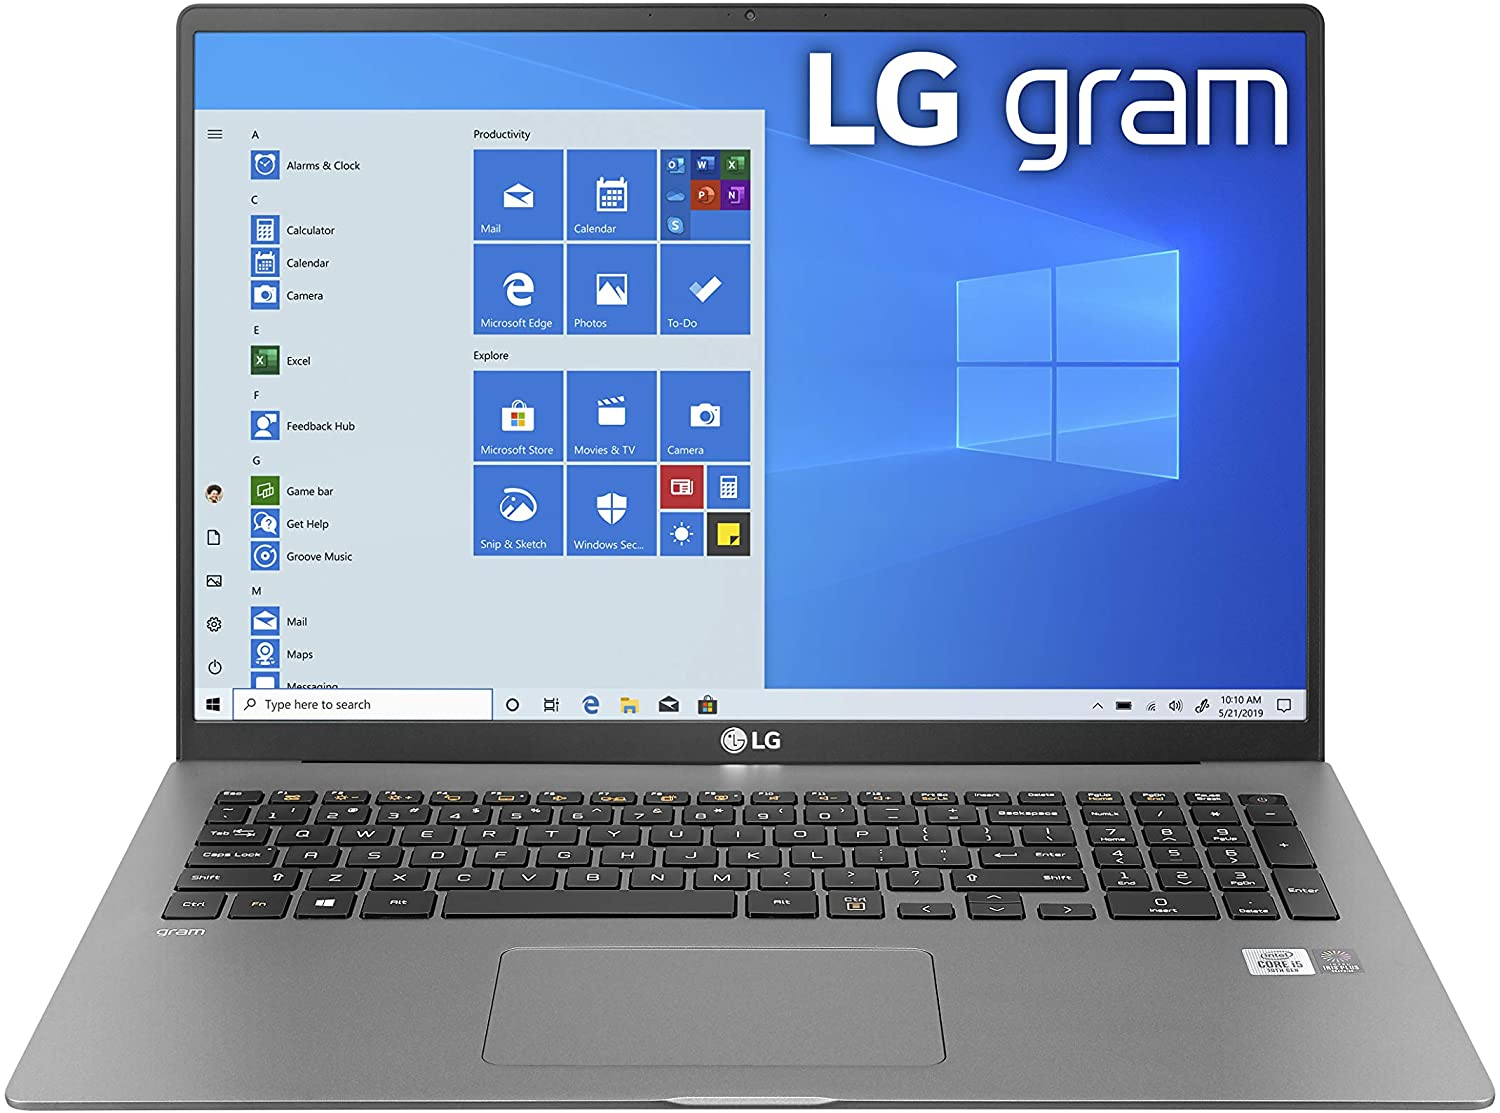 LG Gram Laptop - Best Laptop for Day Trading